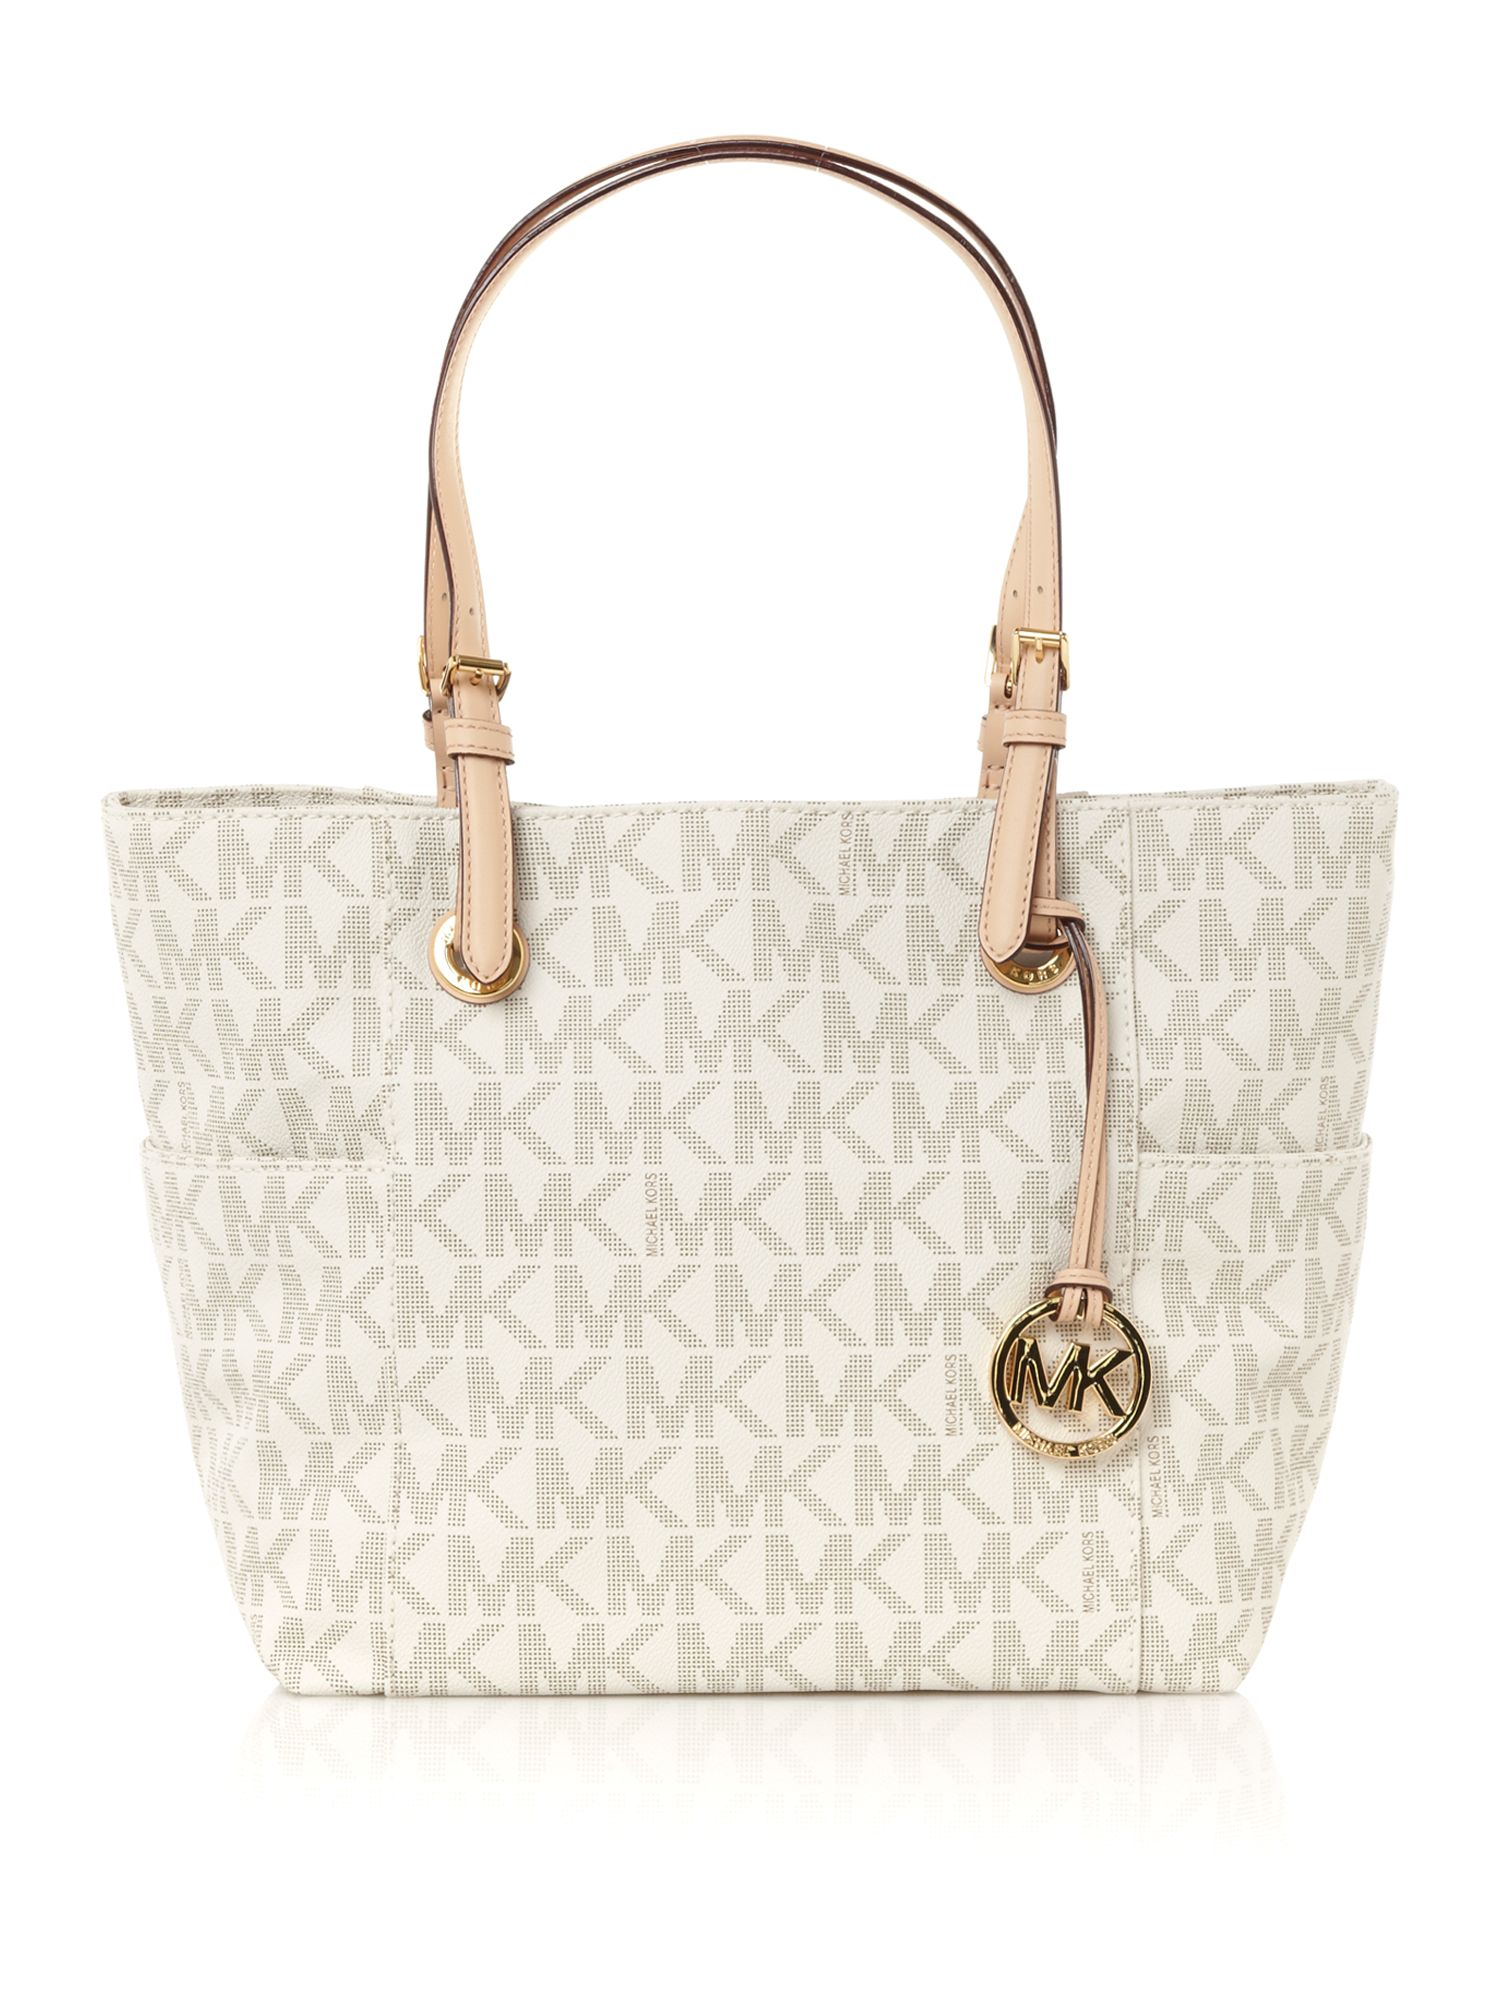 Michael Kors Logo Small Tote Bag - House of Fraser a506fb7d43